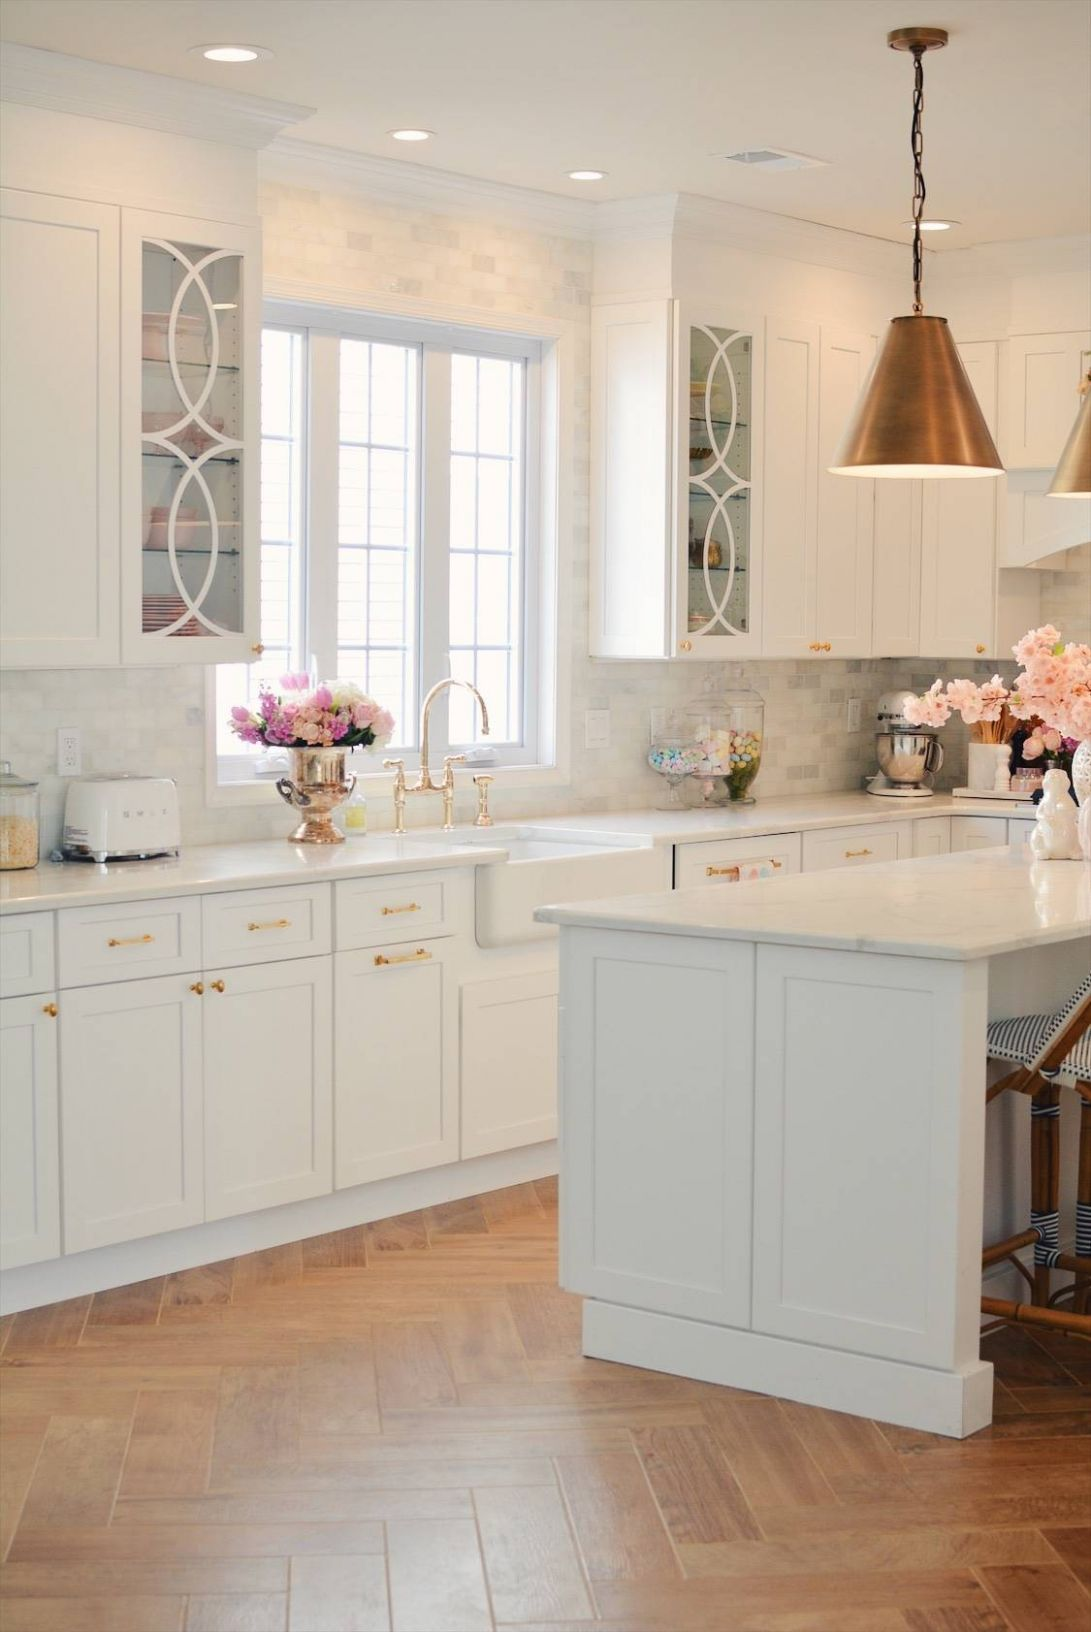 Customize your cabinets with O'verlays! | O'verlays